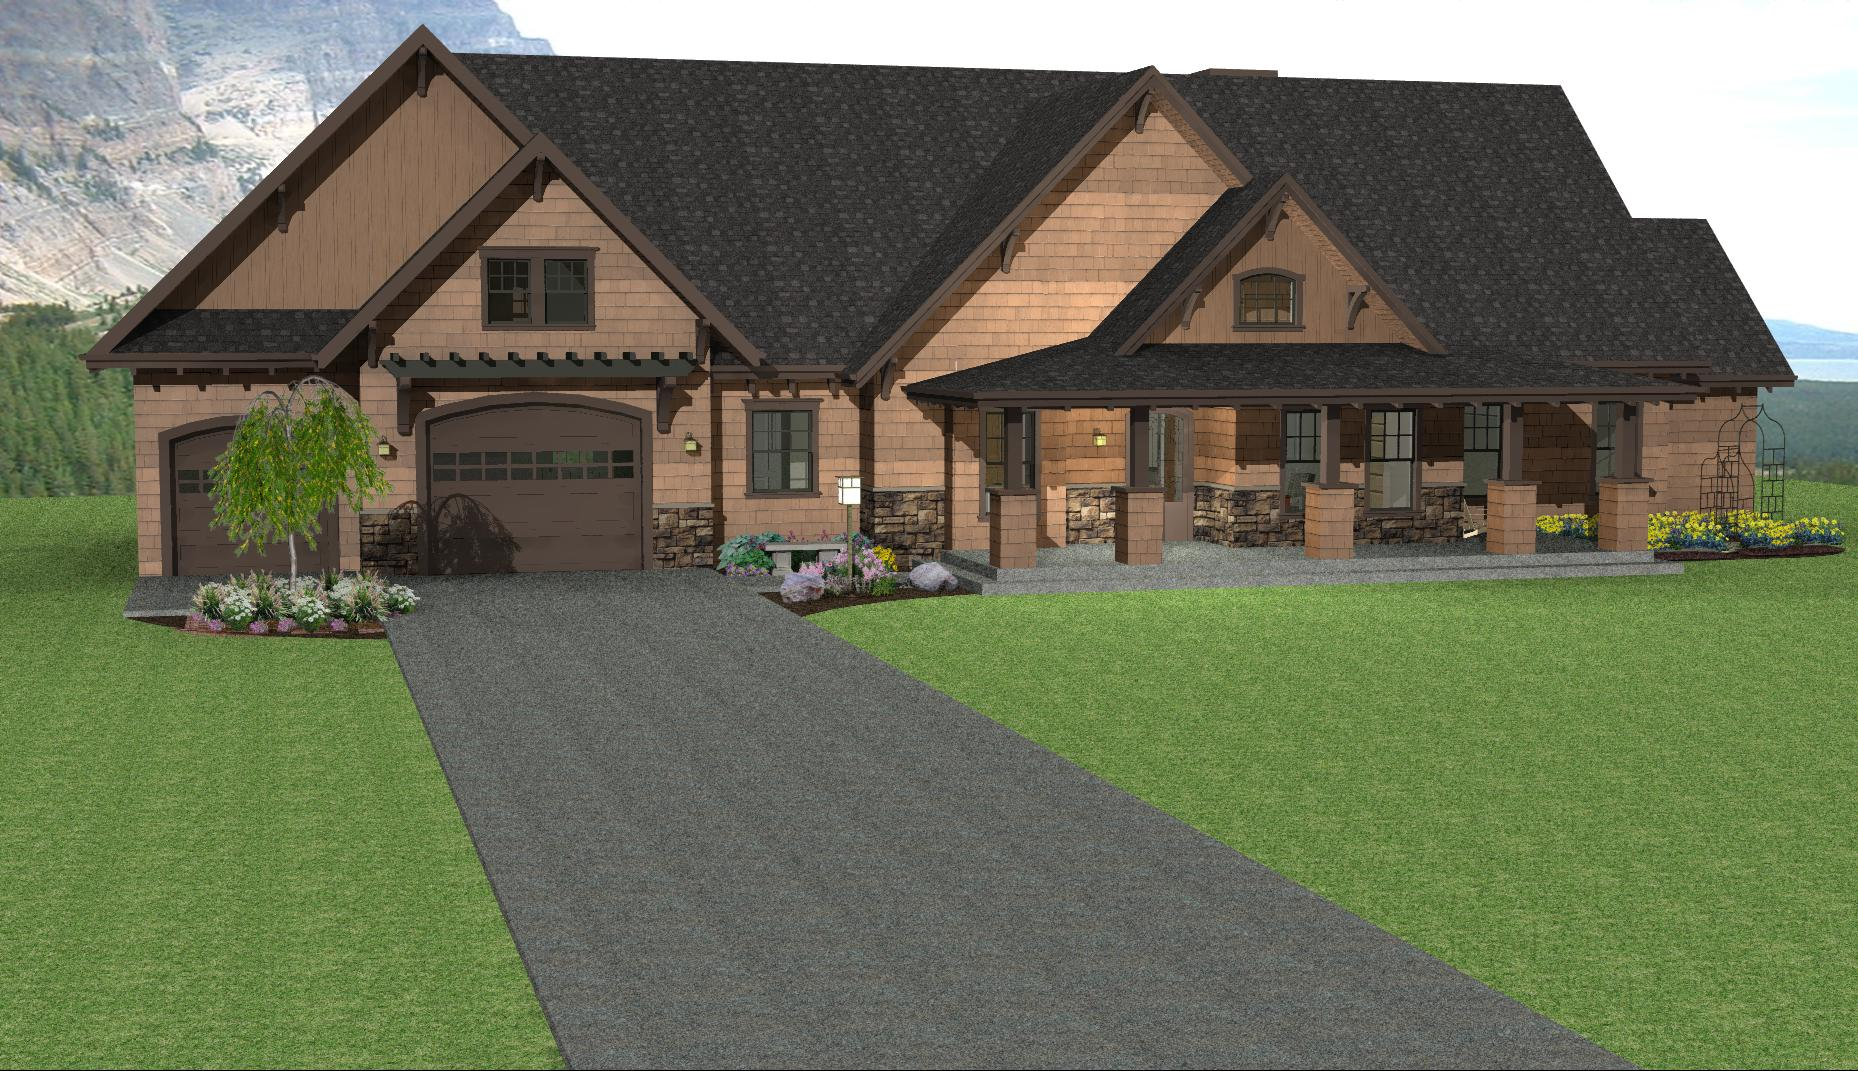 Ranch style home designs find house plans for Ranch style home blueprints